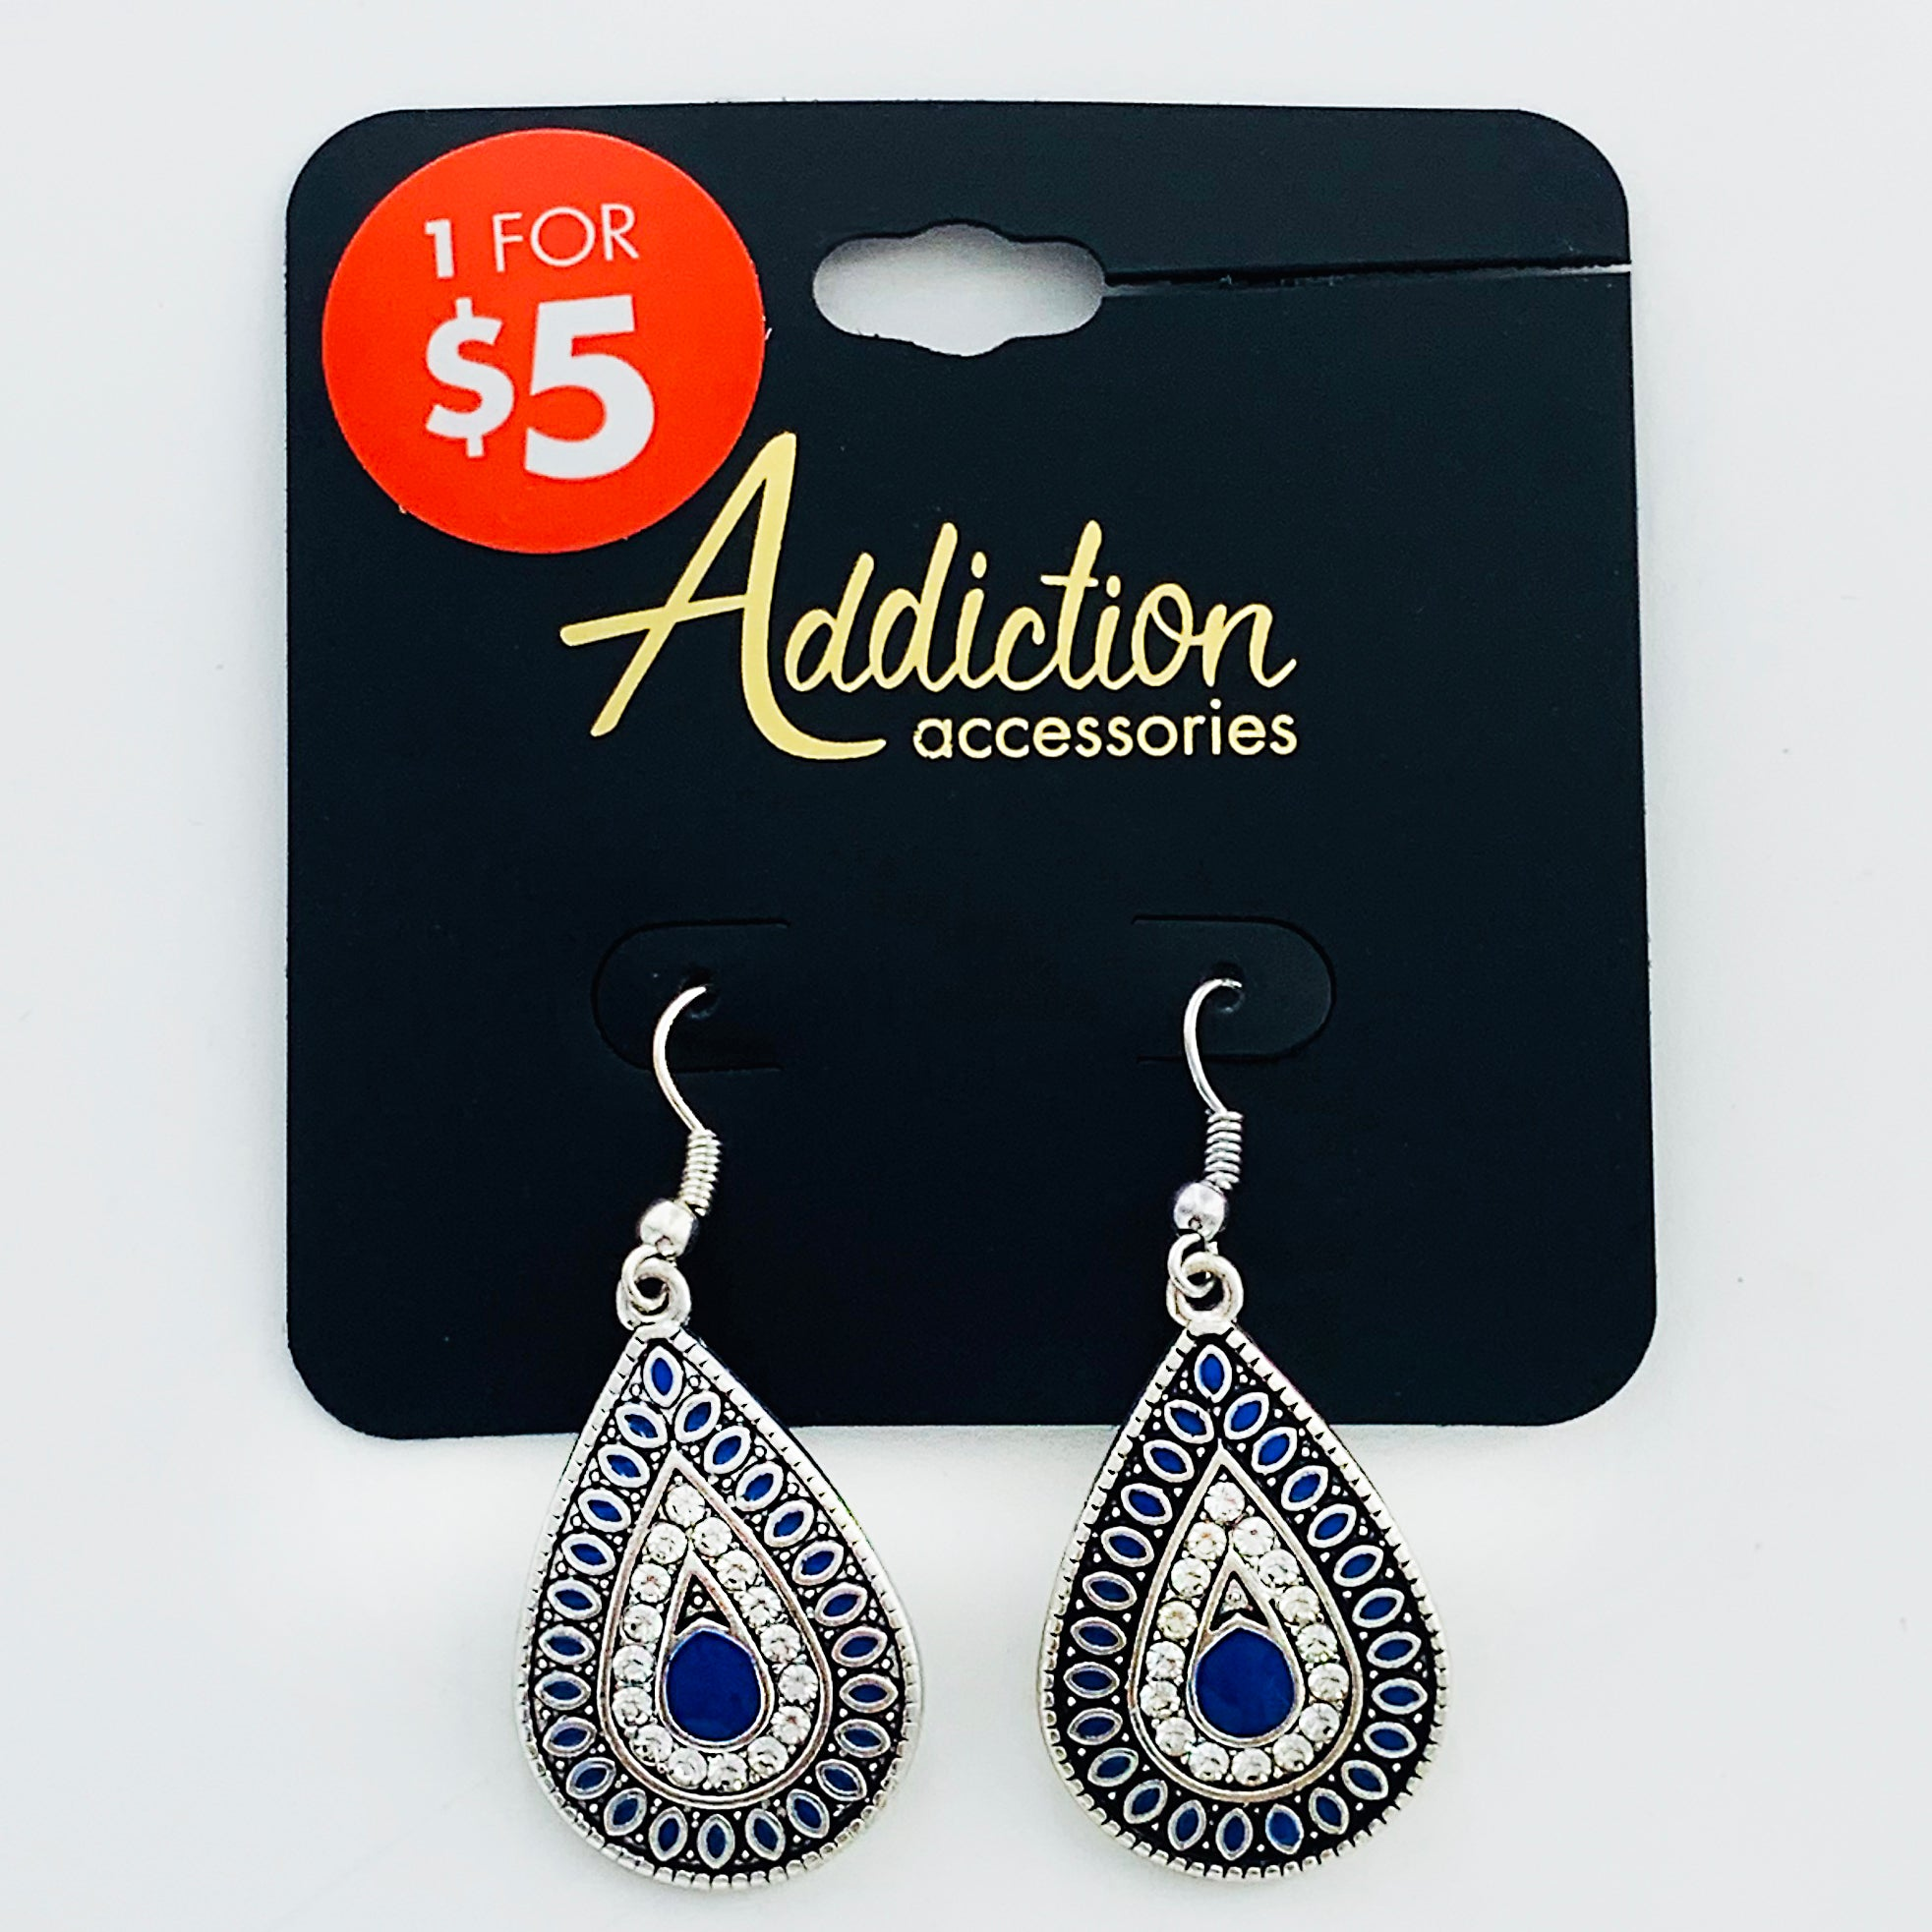 Ethnic-inspired dangling earrings with blue and diamante stones